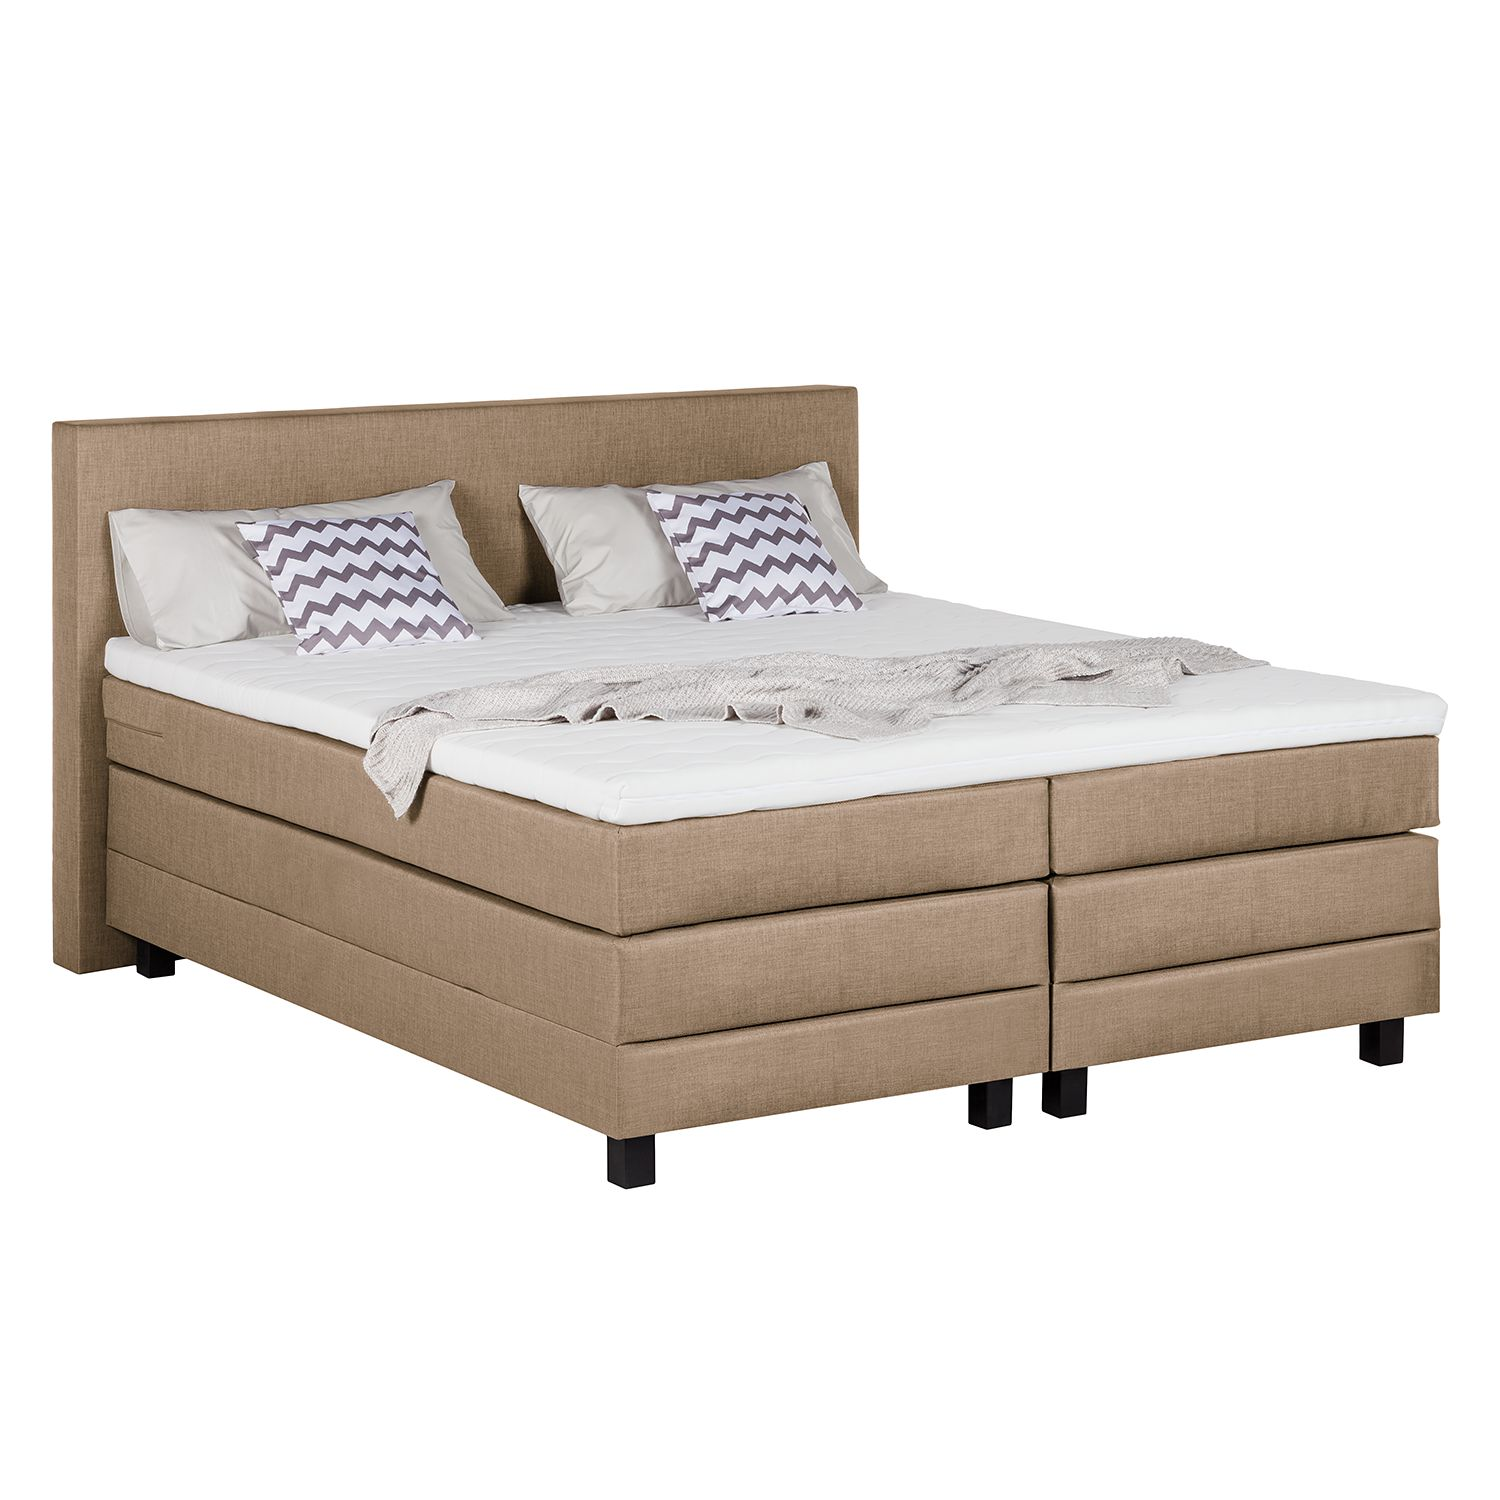 Boxspringbett Superior Night